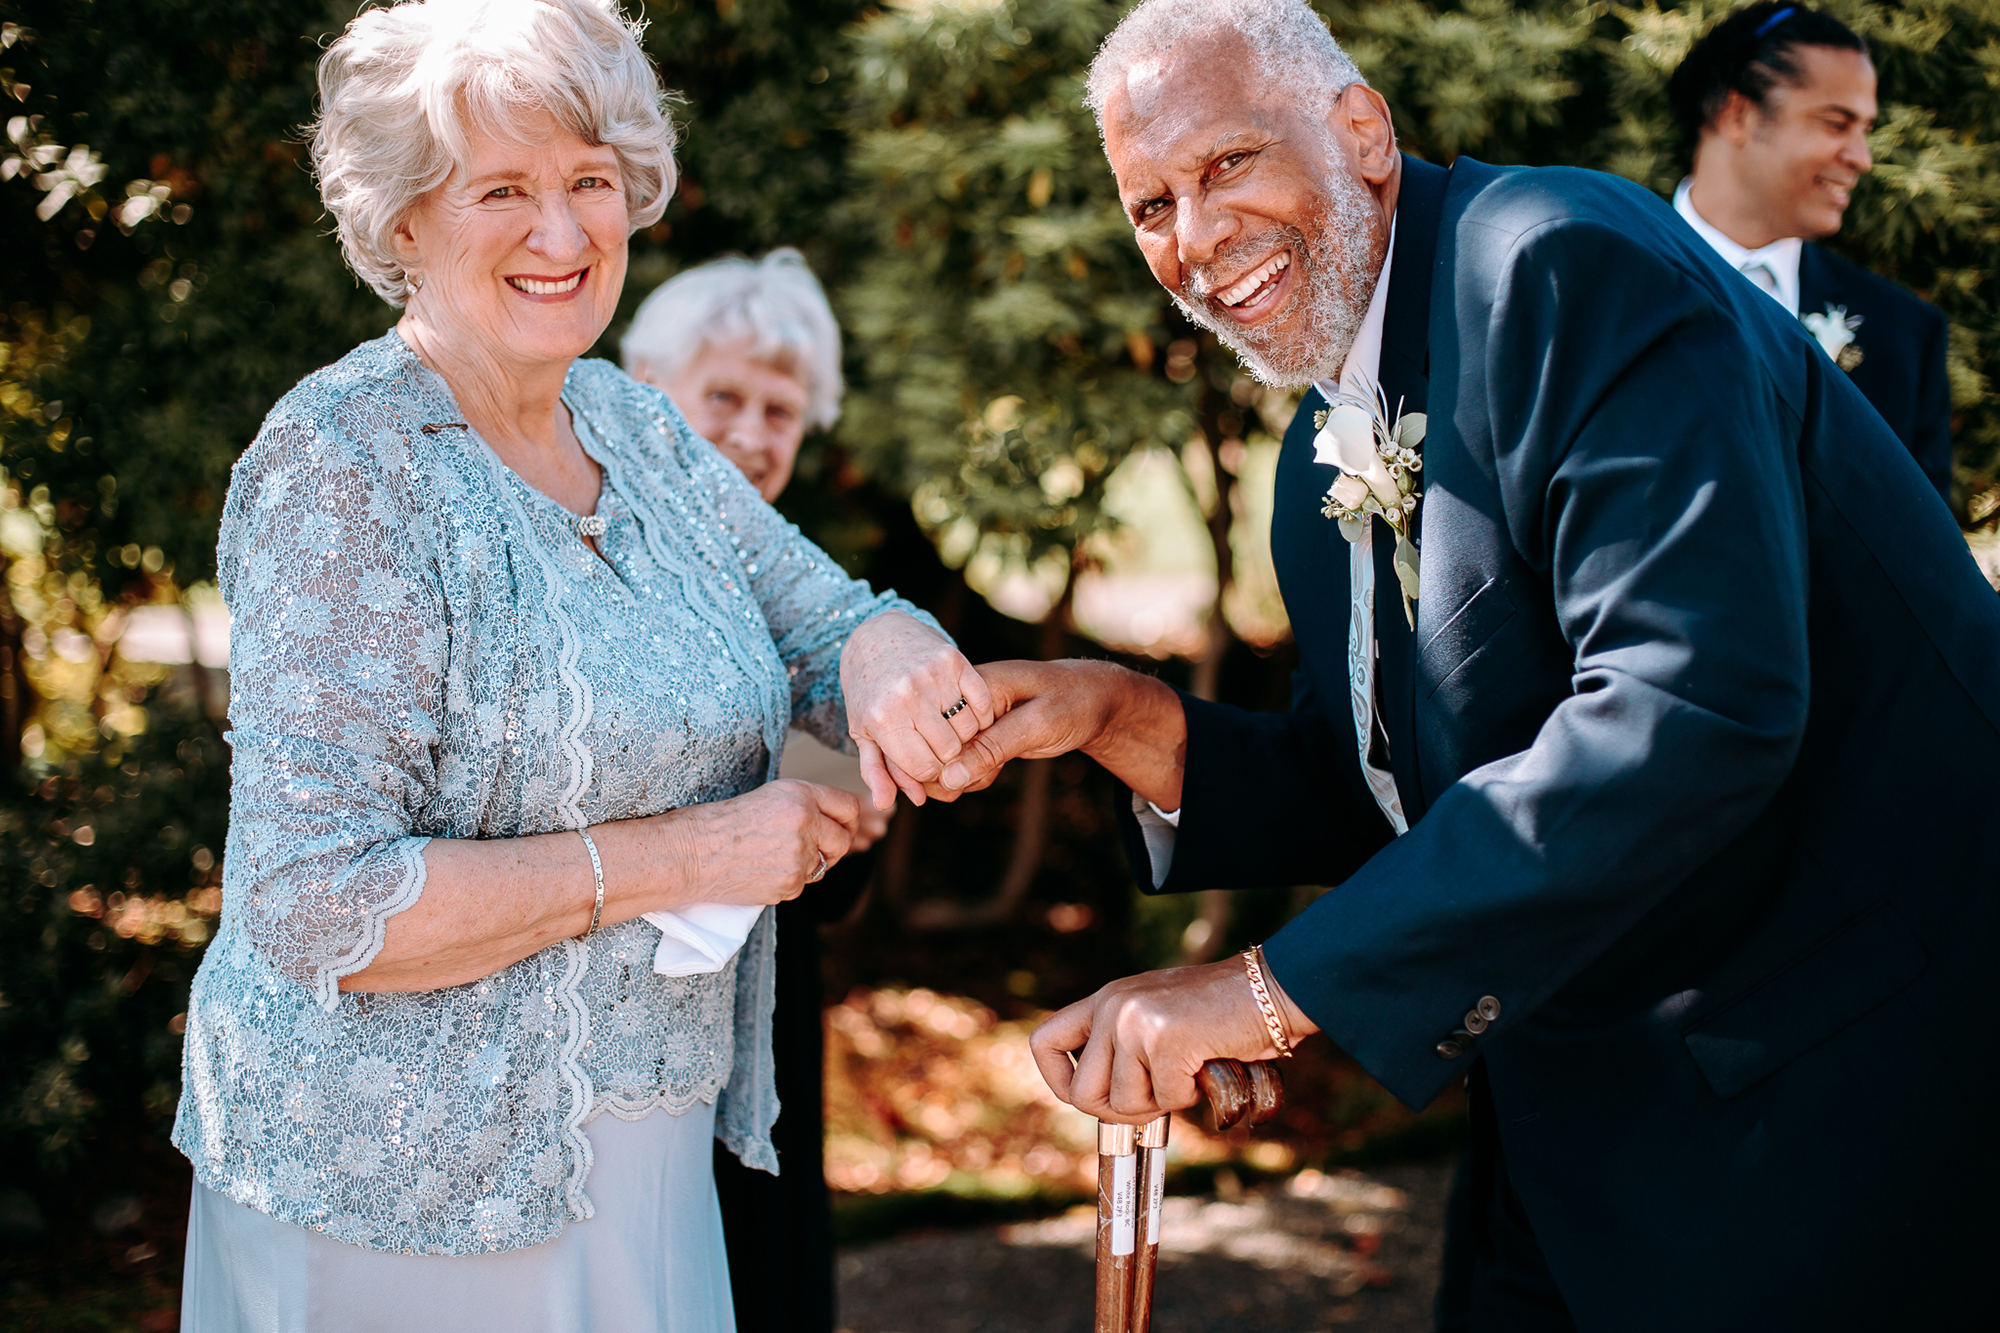 Audrey and Jim, 78 and 79, This Couple Met Online and Fell in Love—During the Pandemic